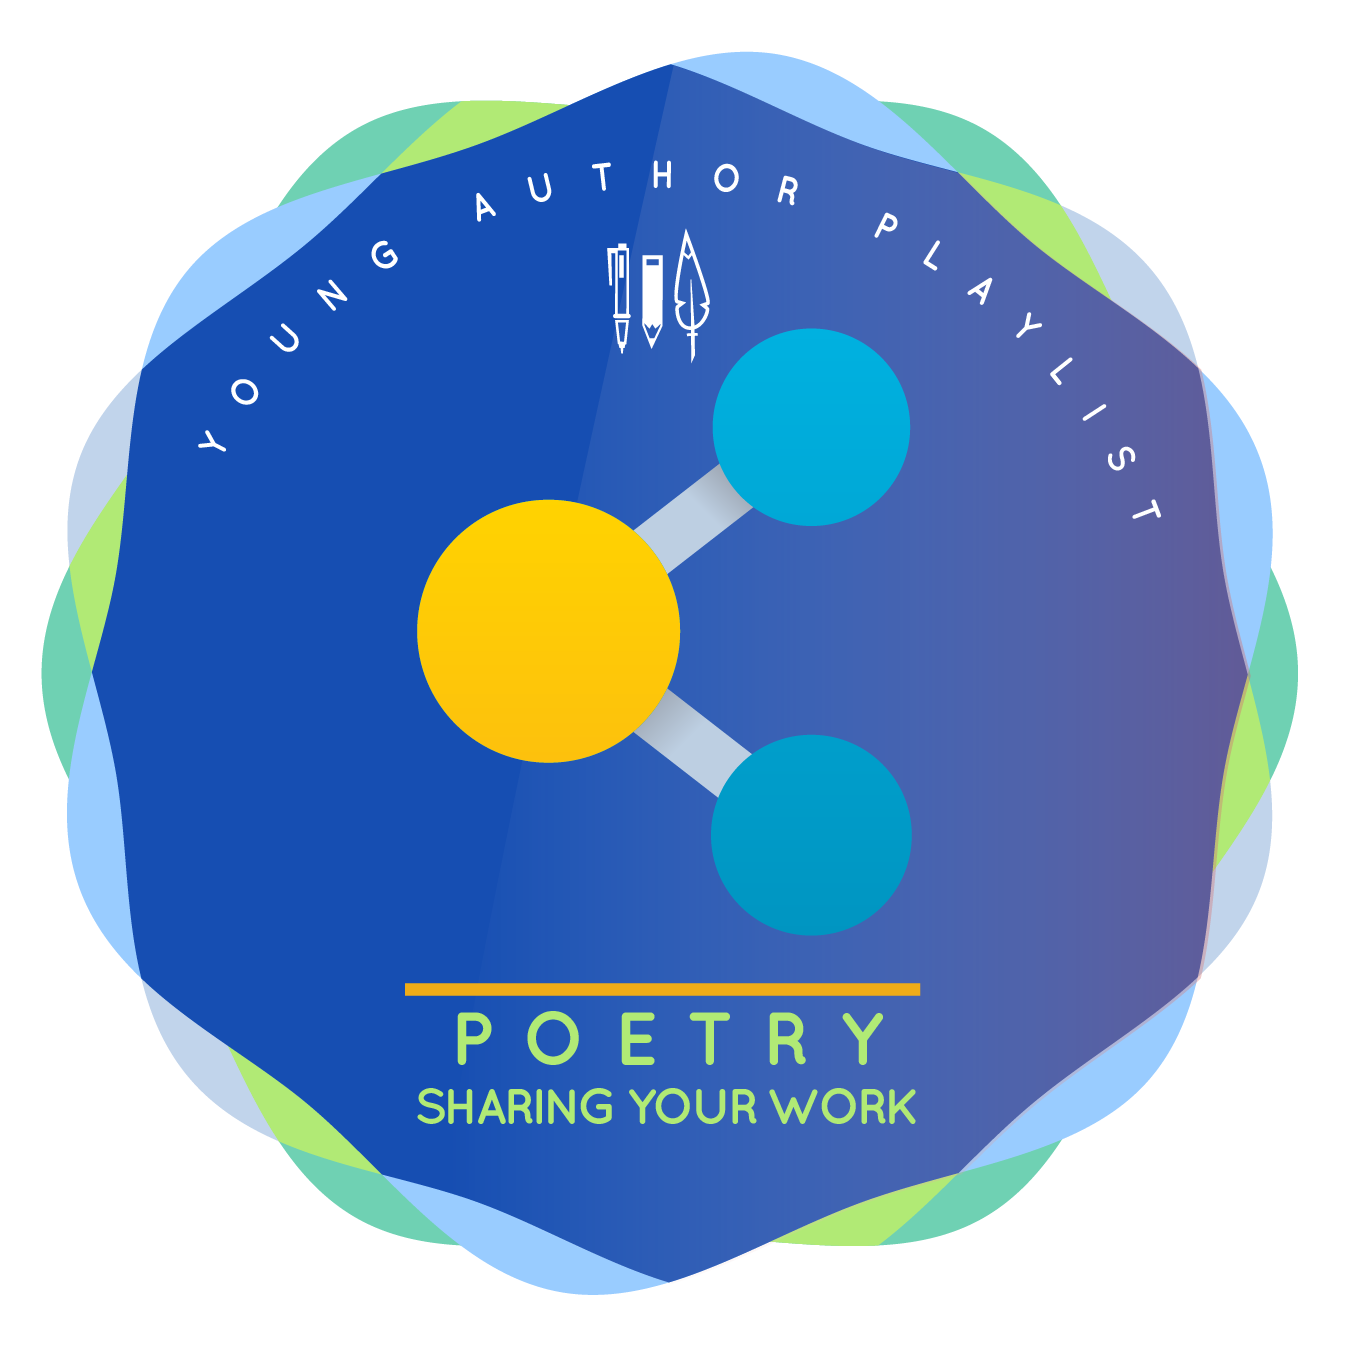 YAP Sharing Your Work: Poetry